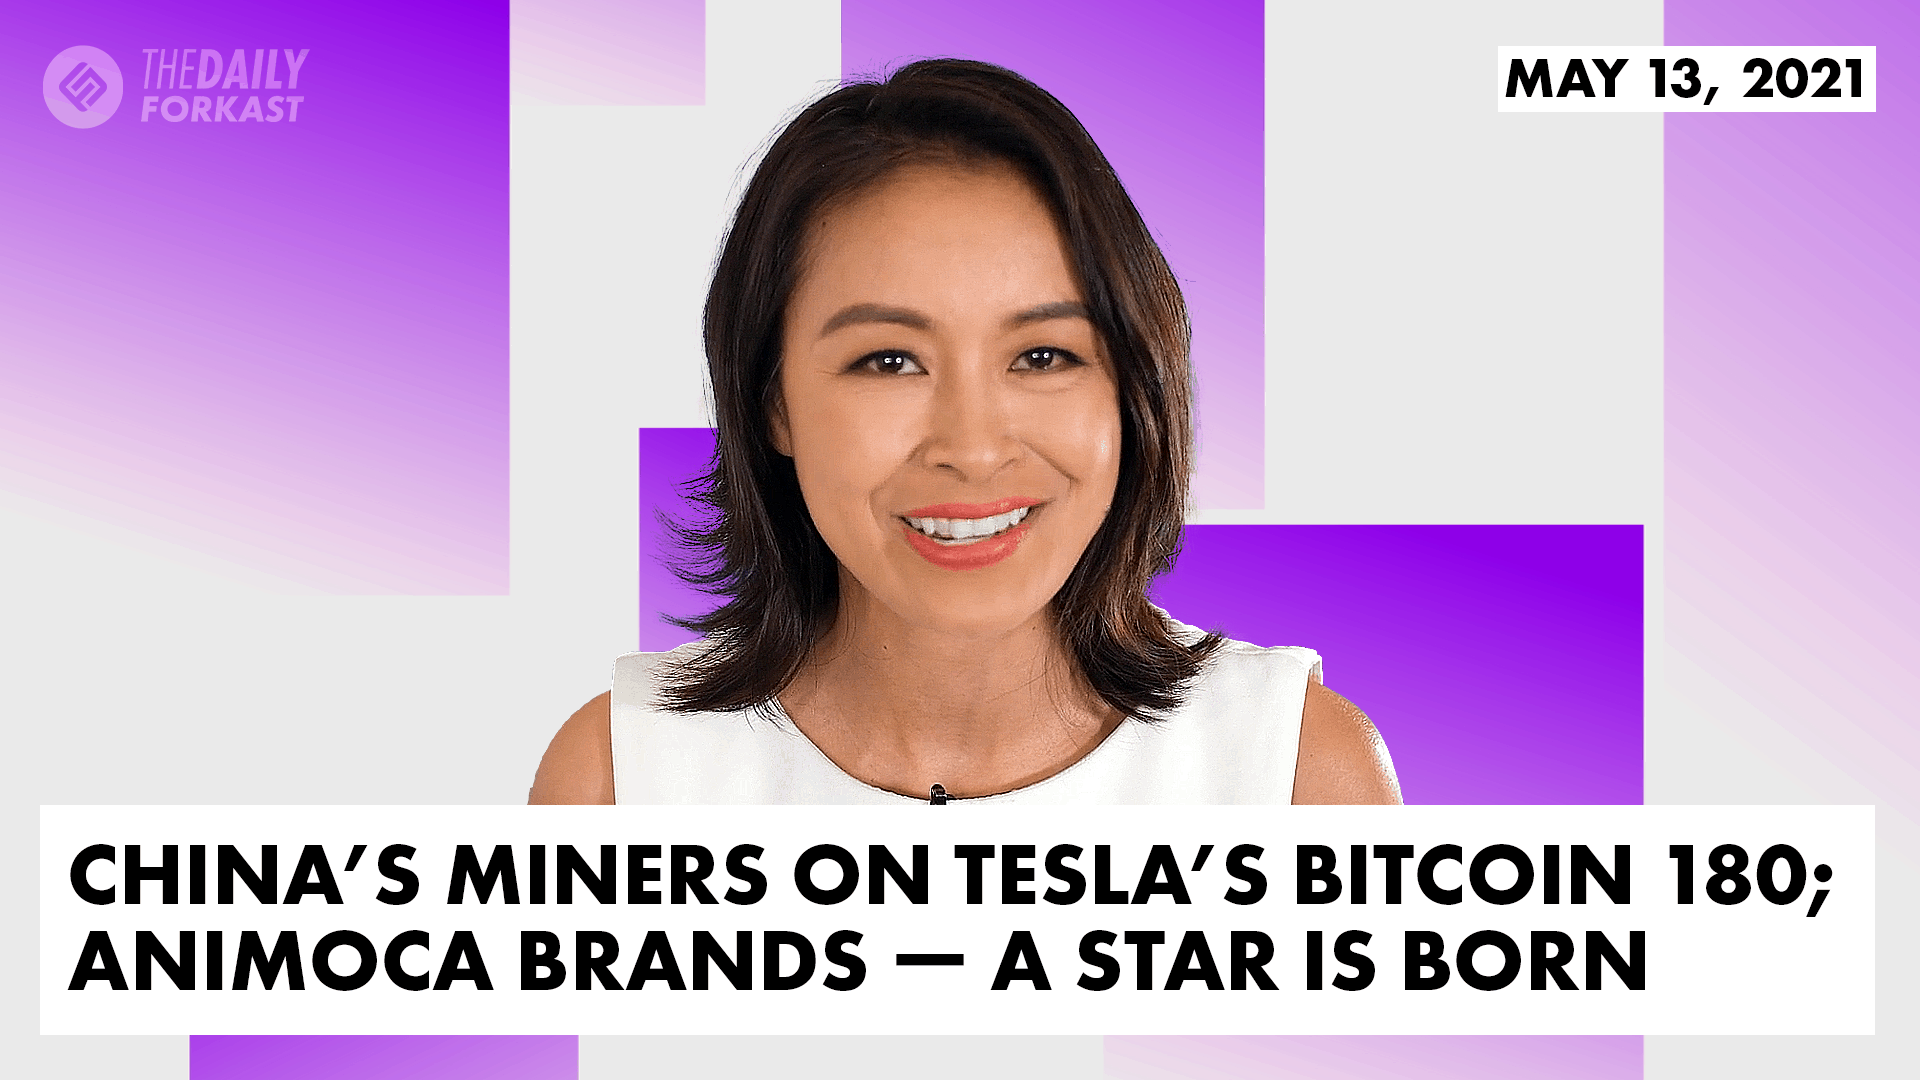 Chinas miners on Teslas Bitcoin 180 Animoca Brands a star is born The Daily Forkast